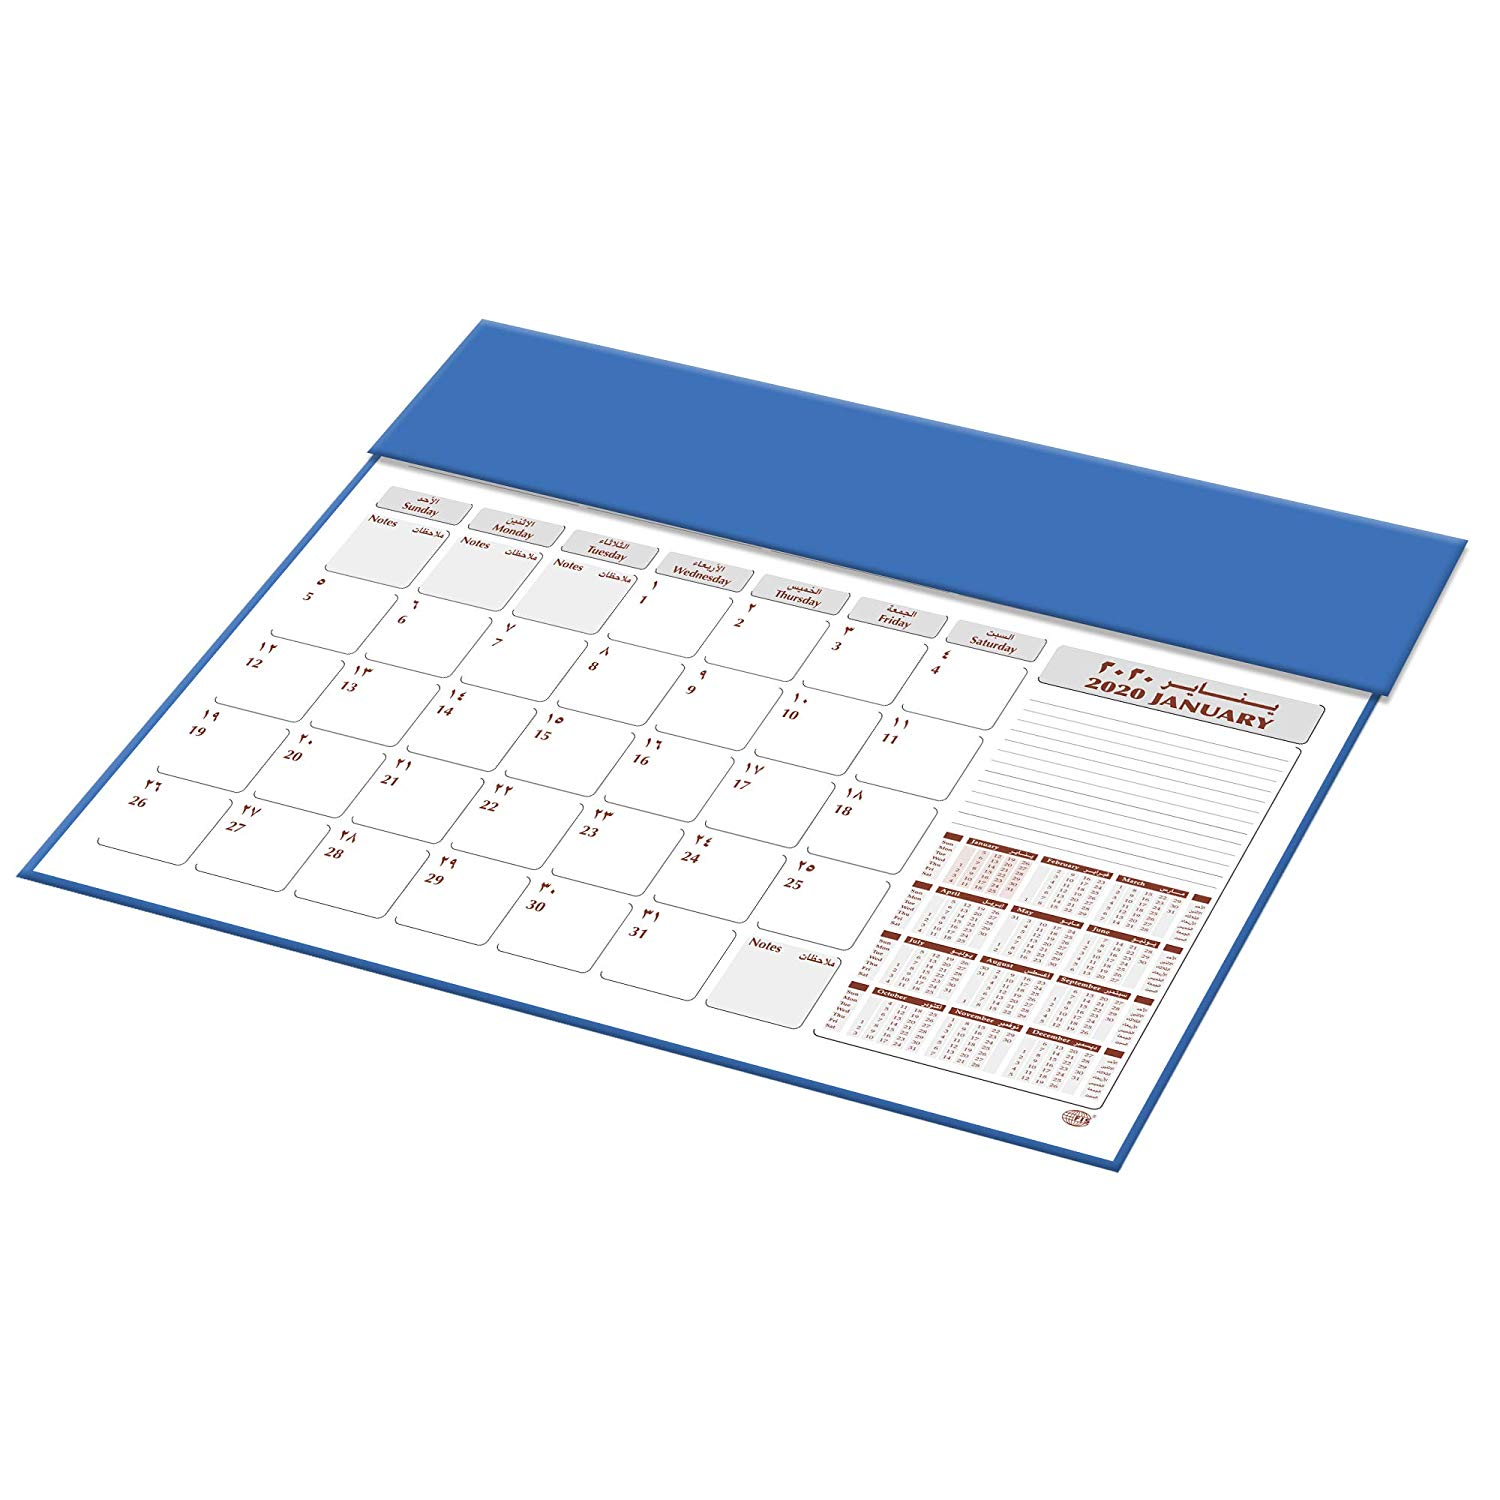 FIS FSDK2AE20BL 2020 Year Planner (Arabic/English) Italian PU w/ Desk Blotter 490x340mm - Blue